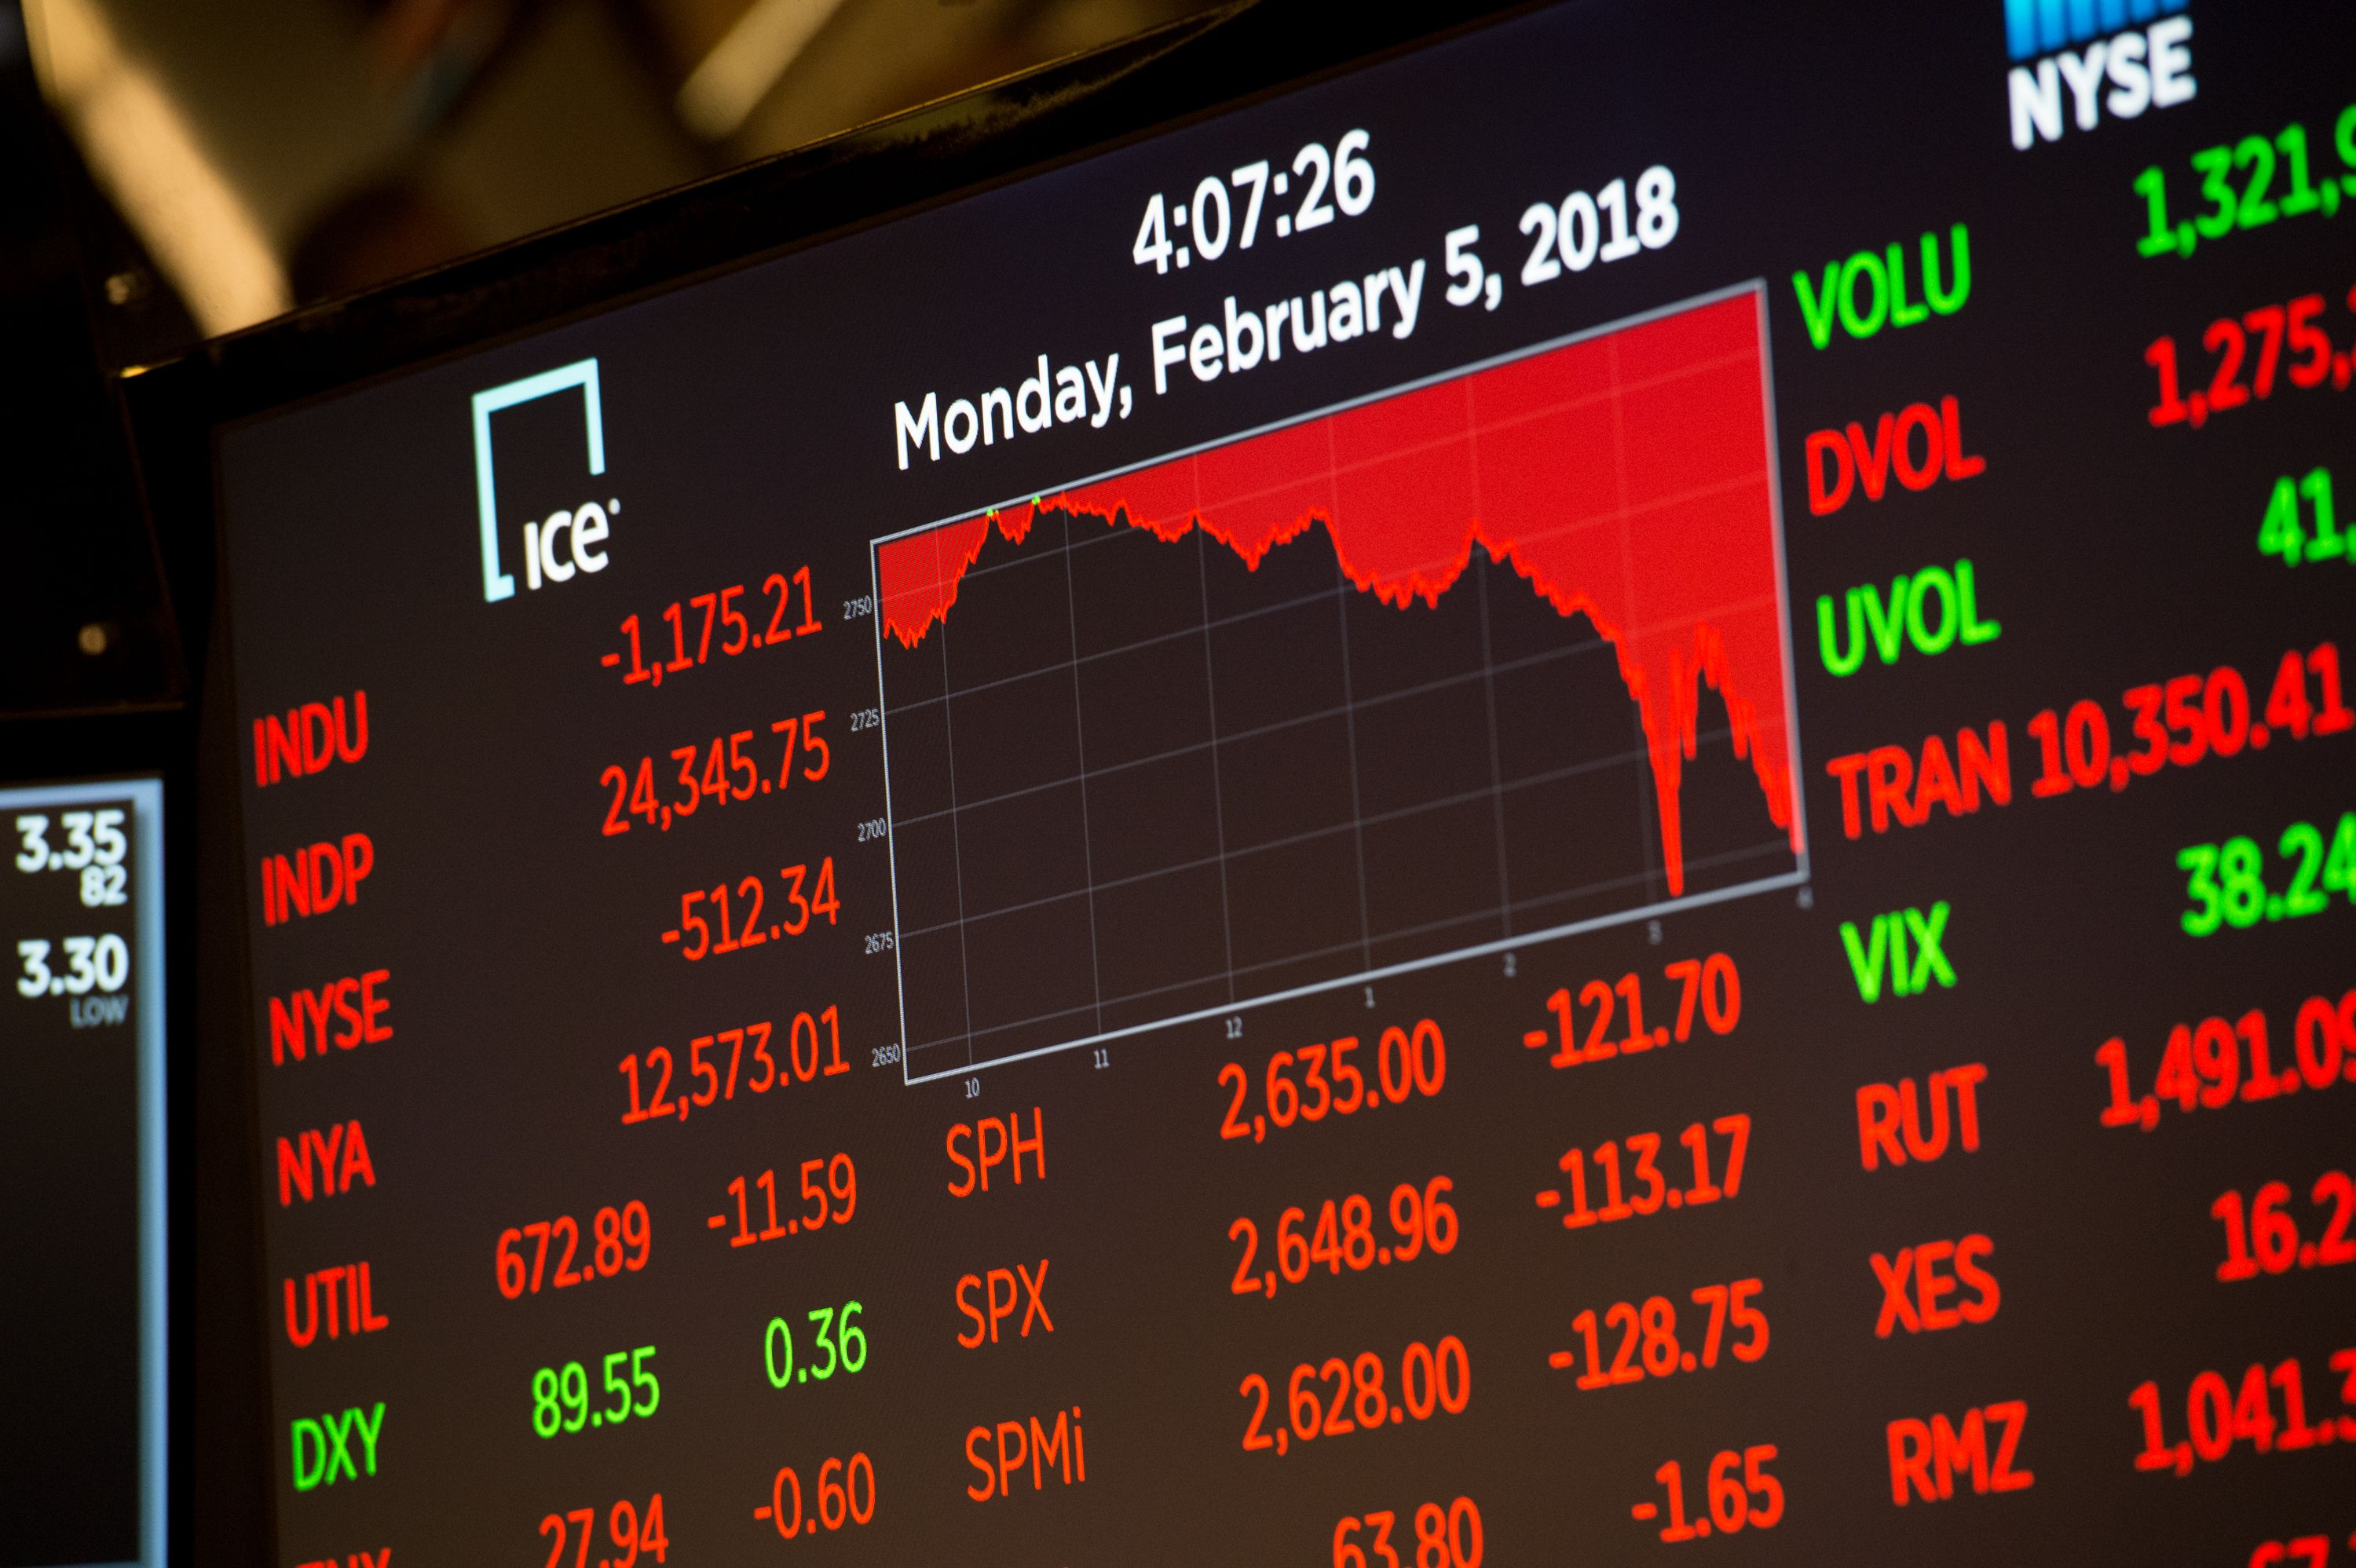 The closing numbers for the stock market appear in red, meaning they are down.